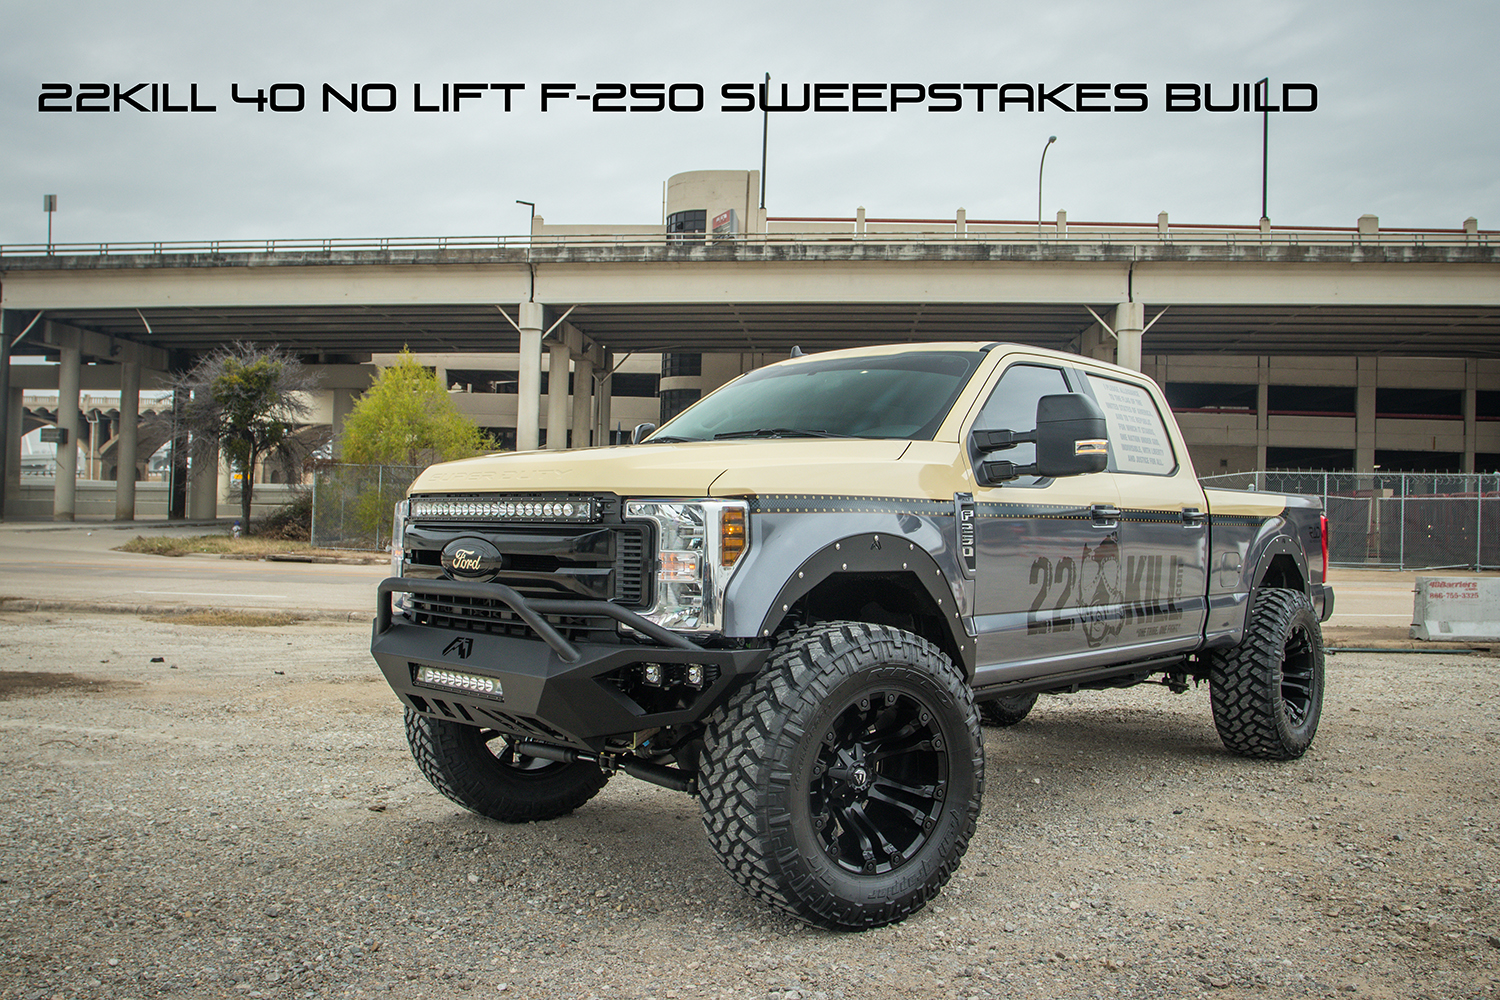 Rad Rides Custom Lifted 4x4 Truck Builds With 4wd Aftermarket Accessories Rad Rides Garland Texas Dfw